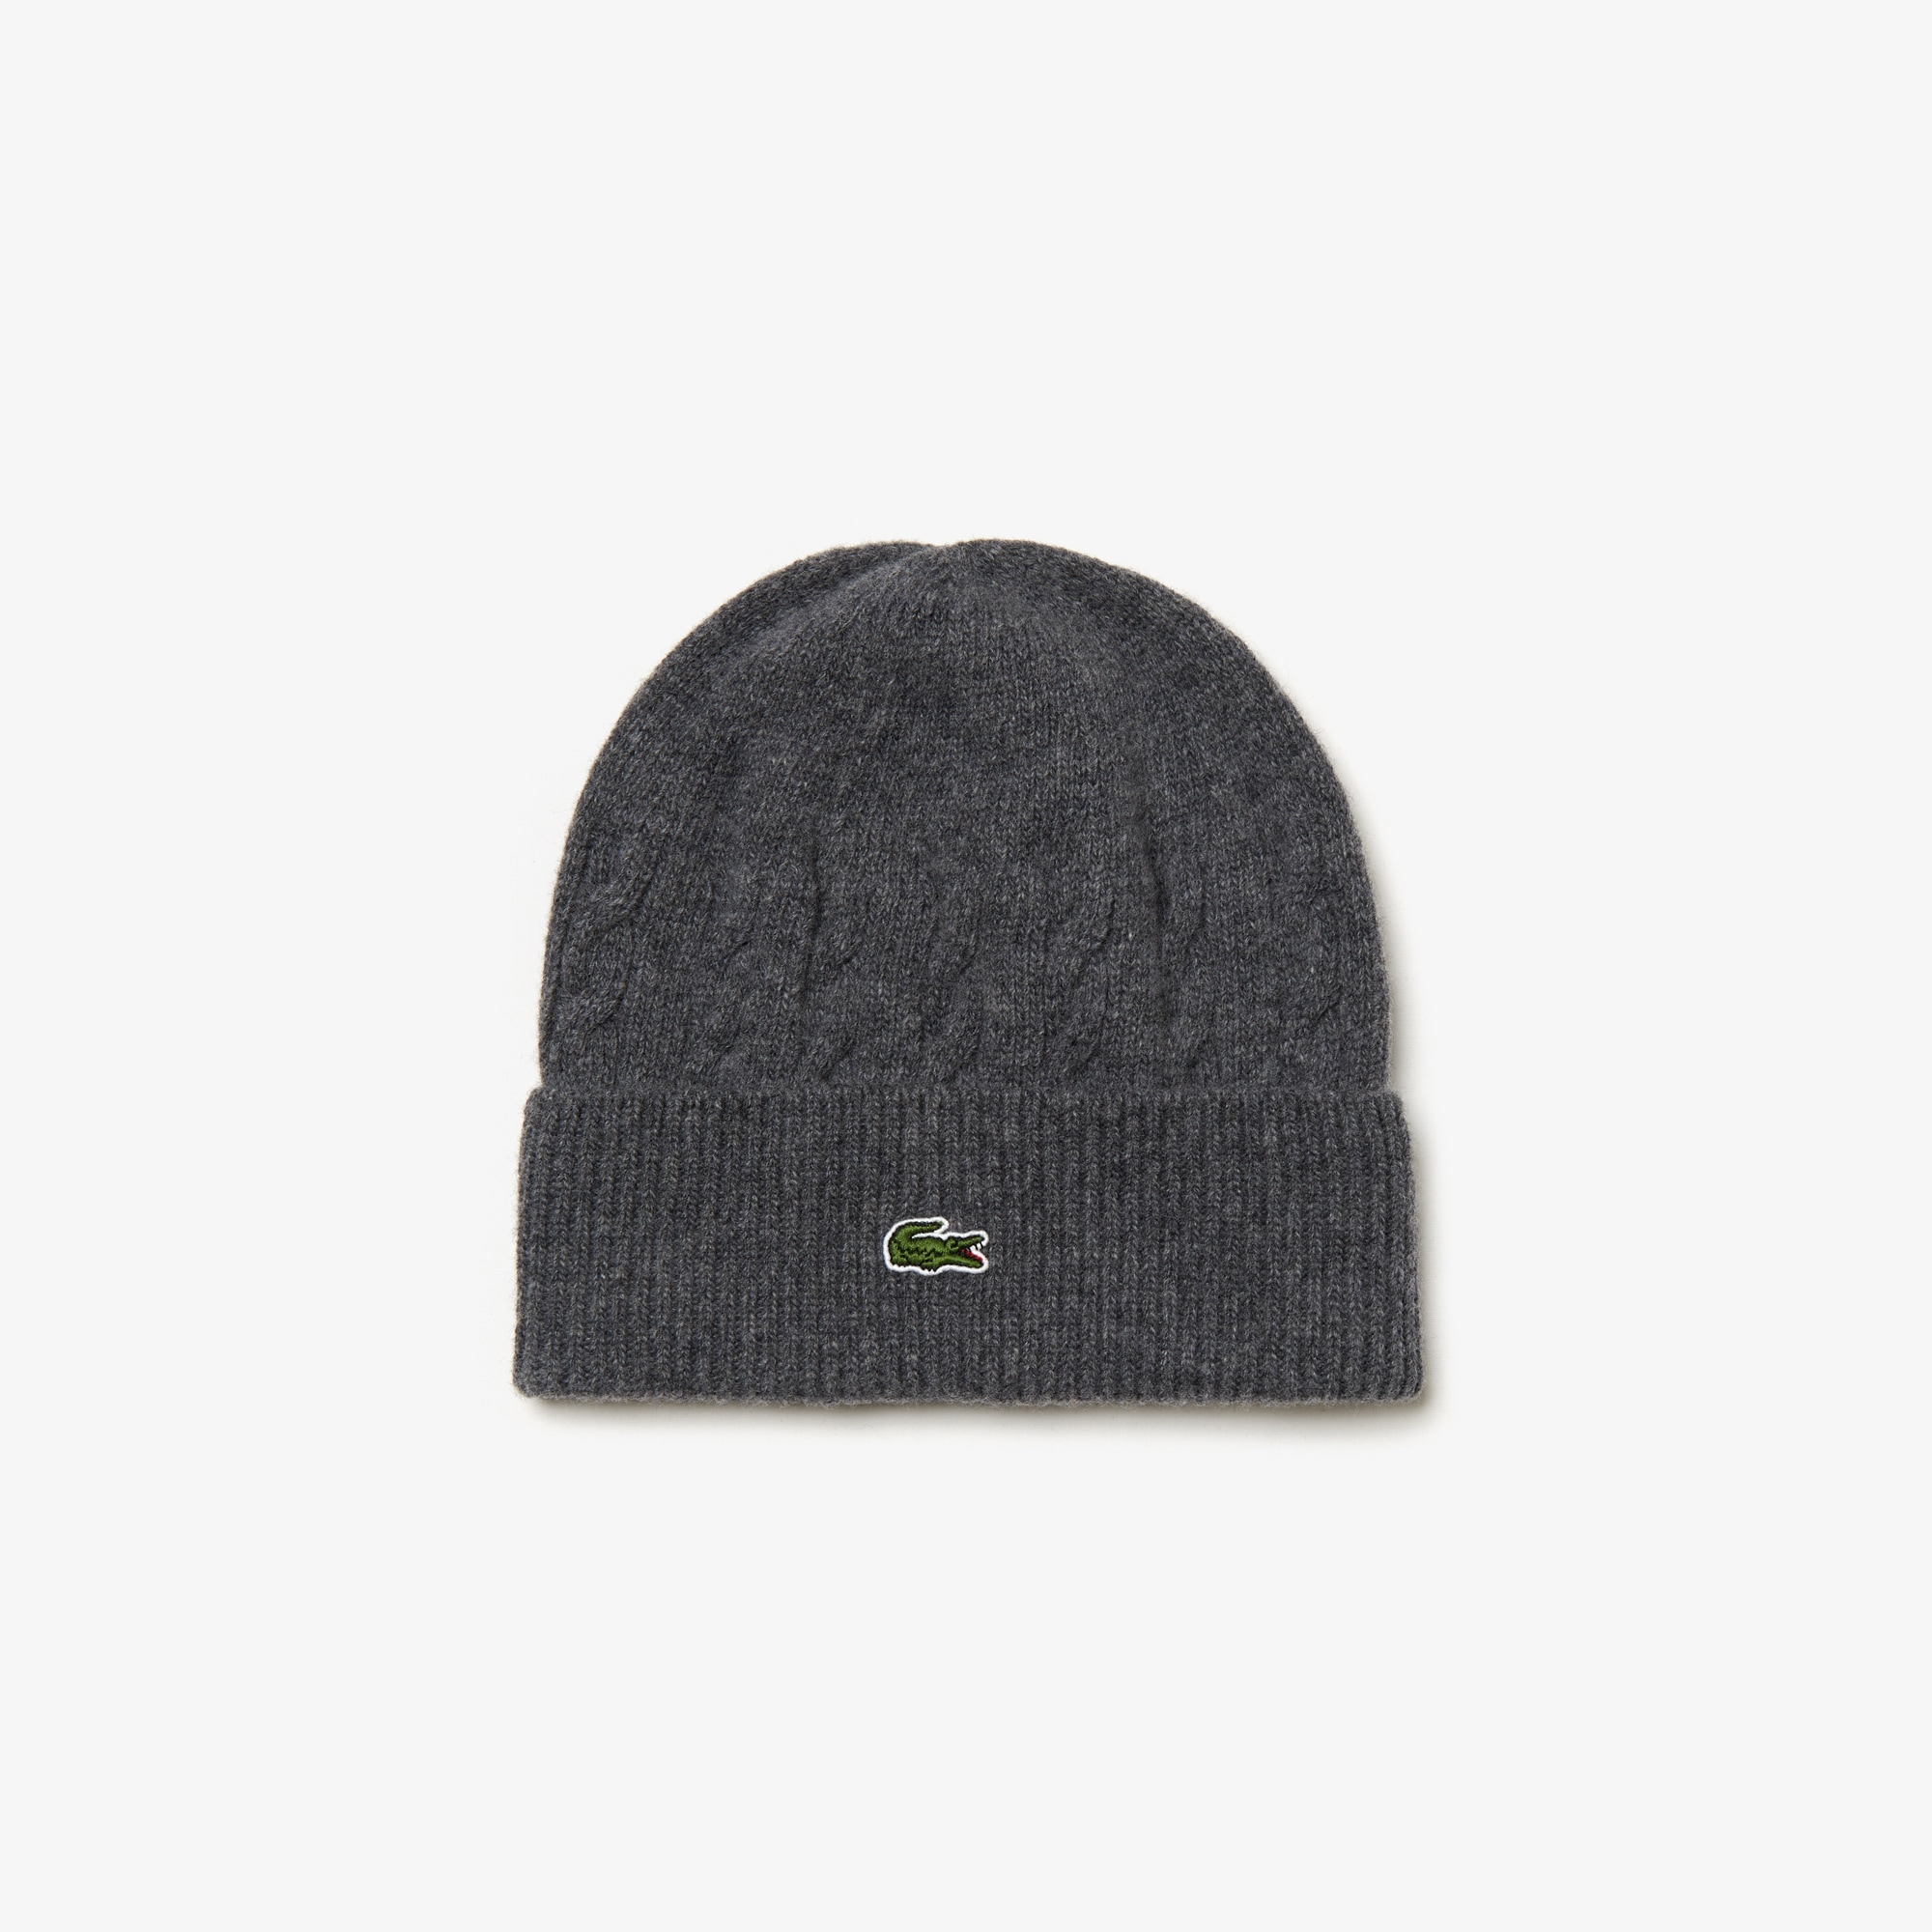 Men's Wool And Alpaga Blend Knit Effect Beanie